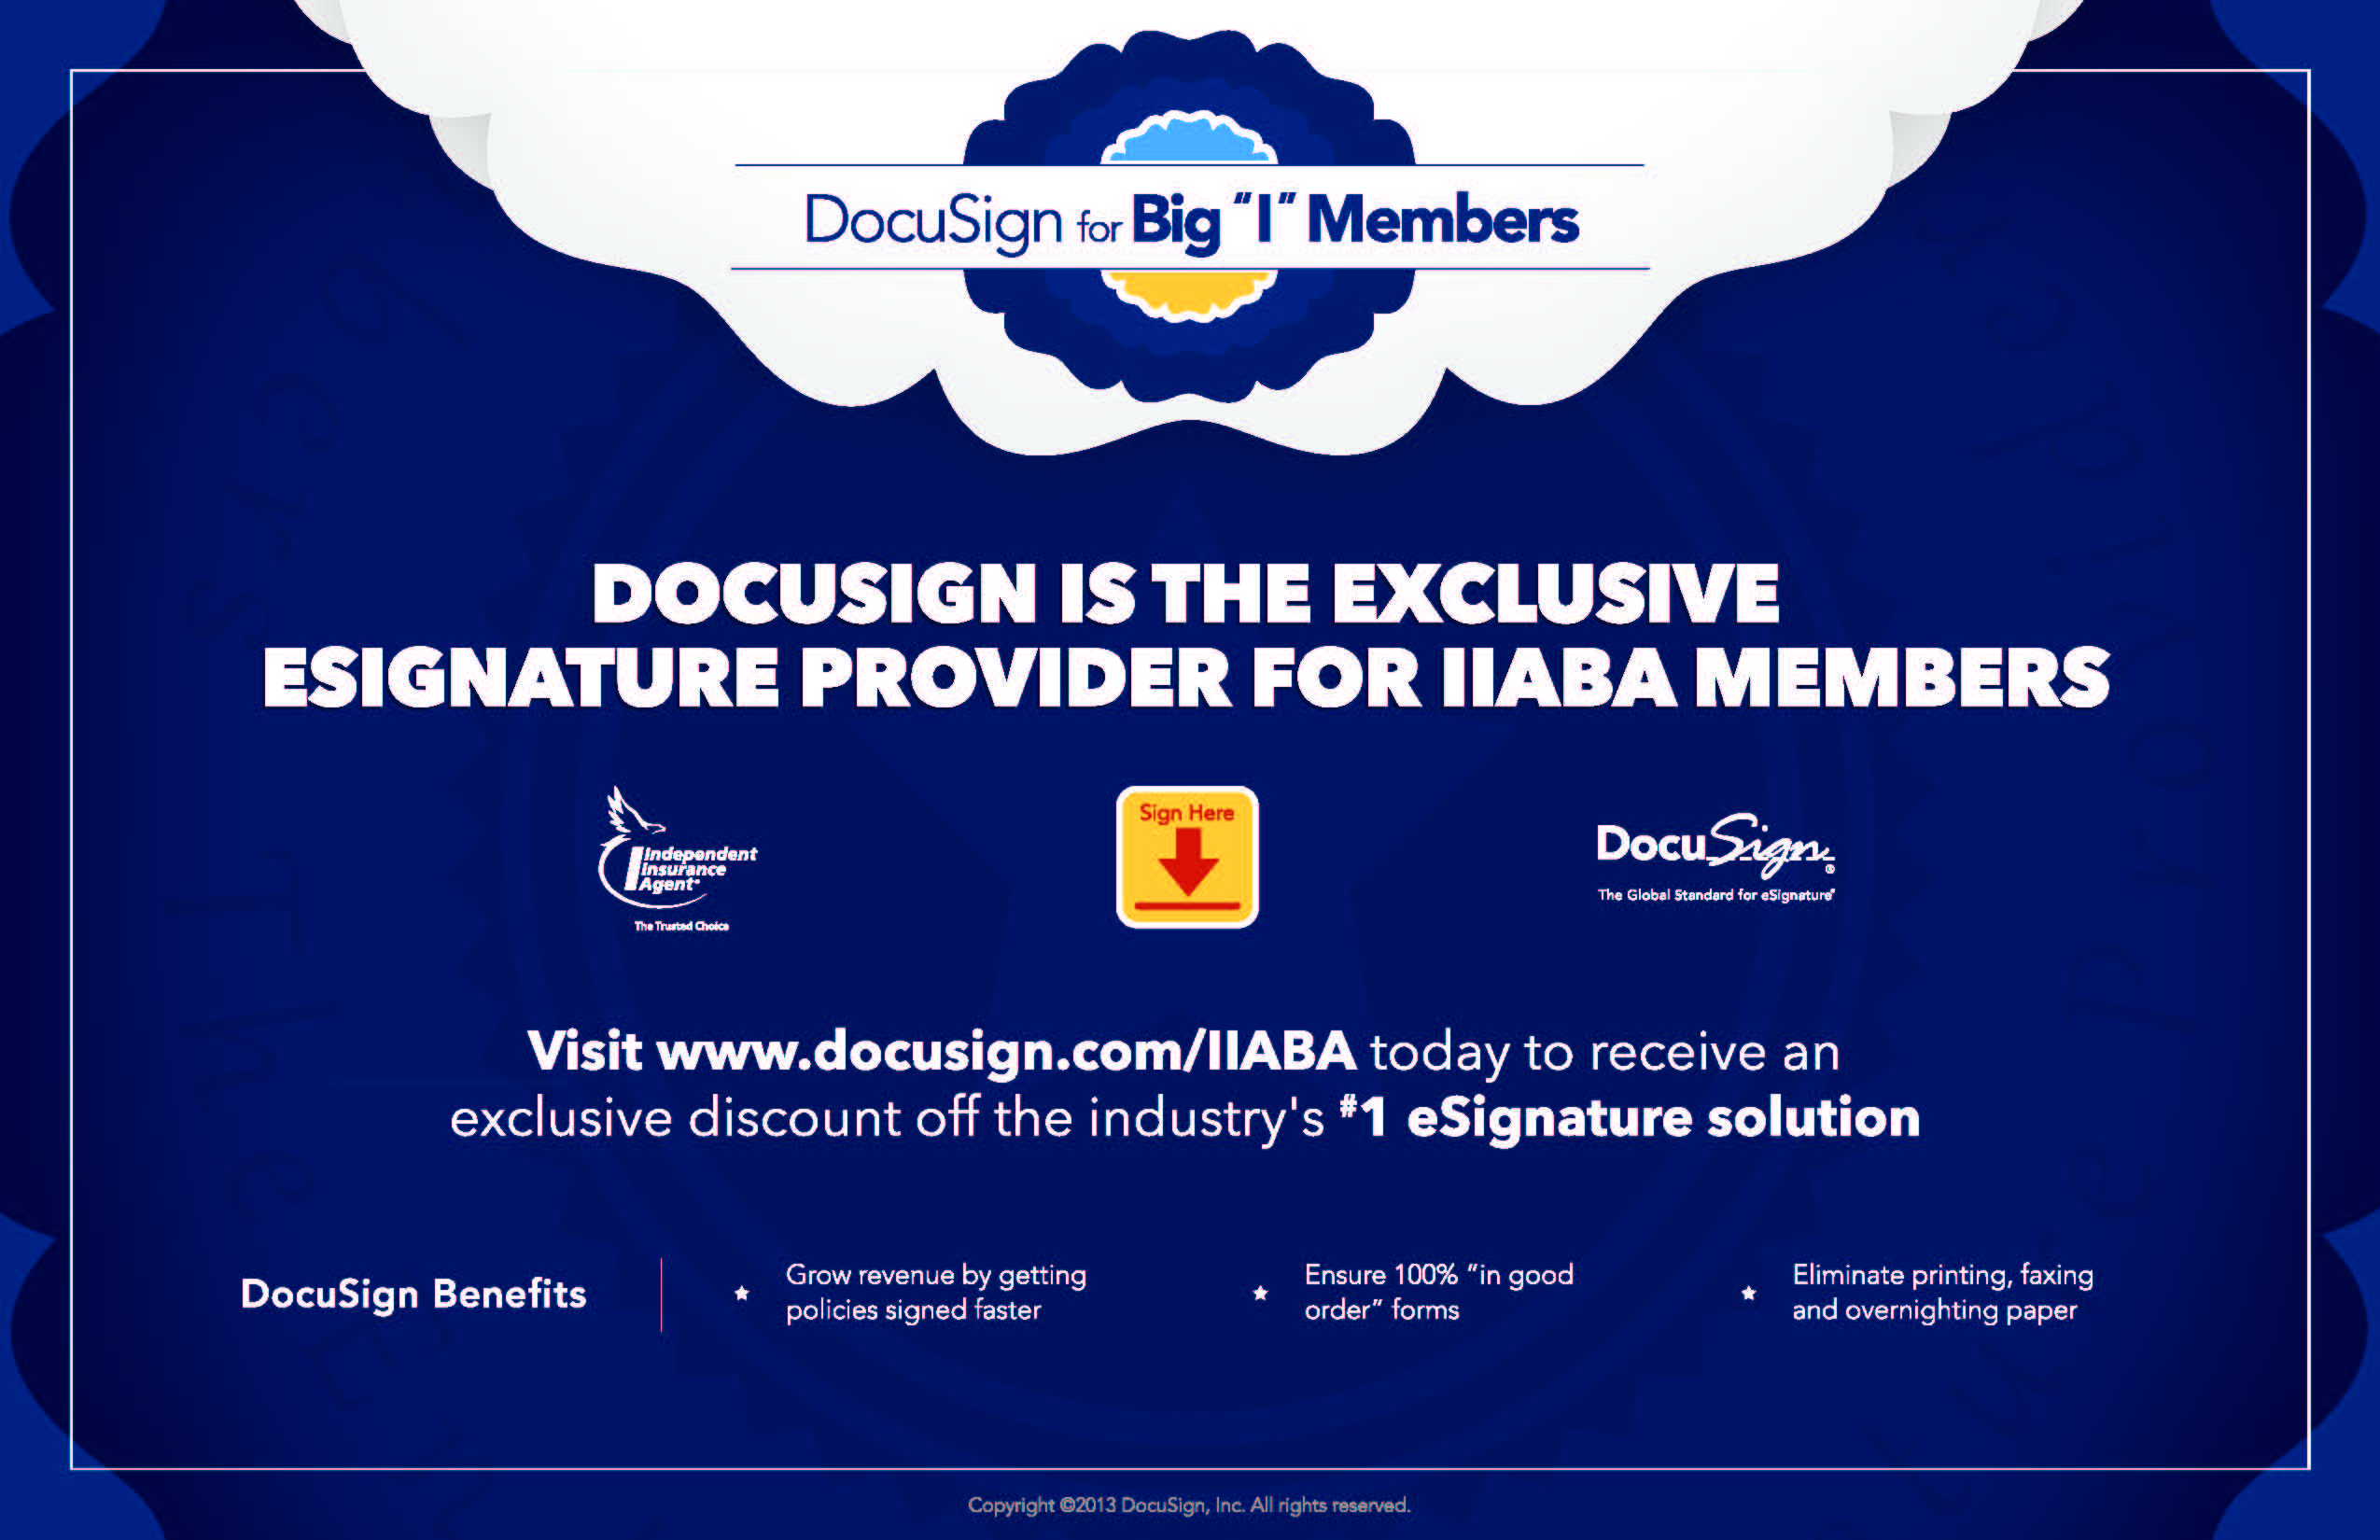 Docusign.HalfAd.jpg